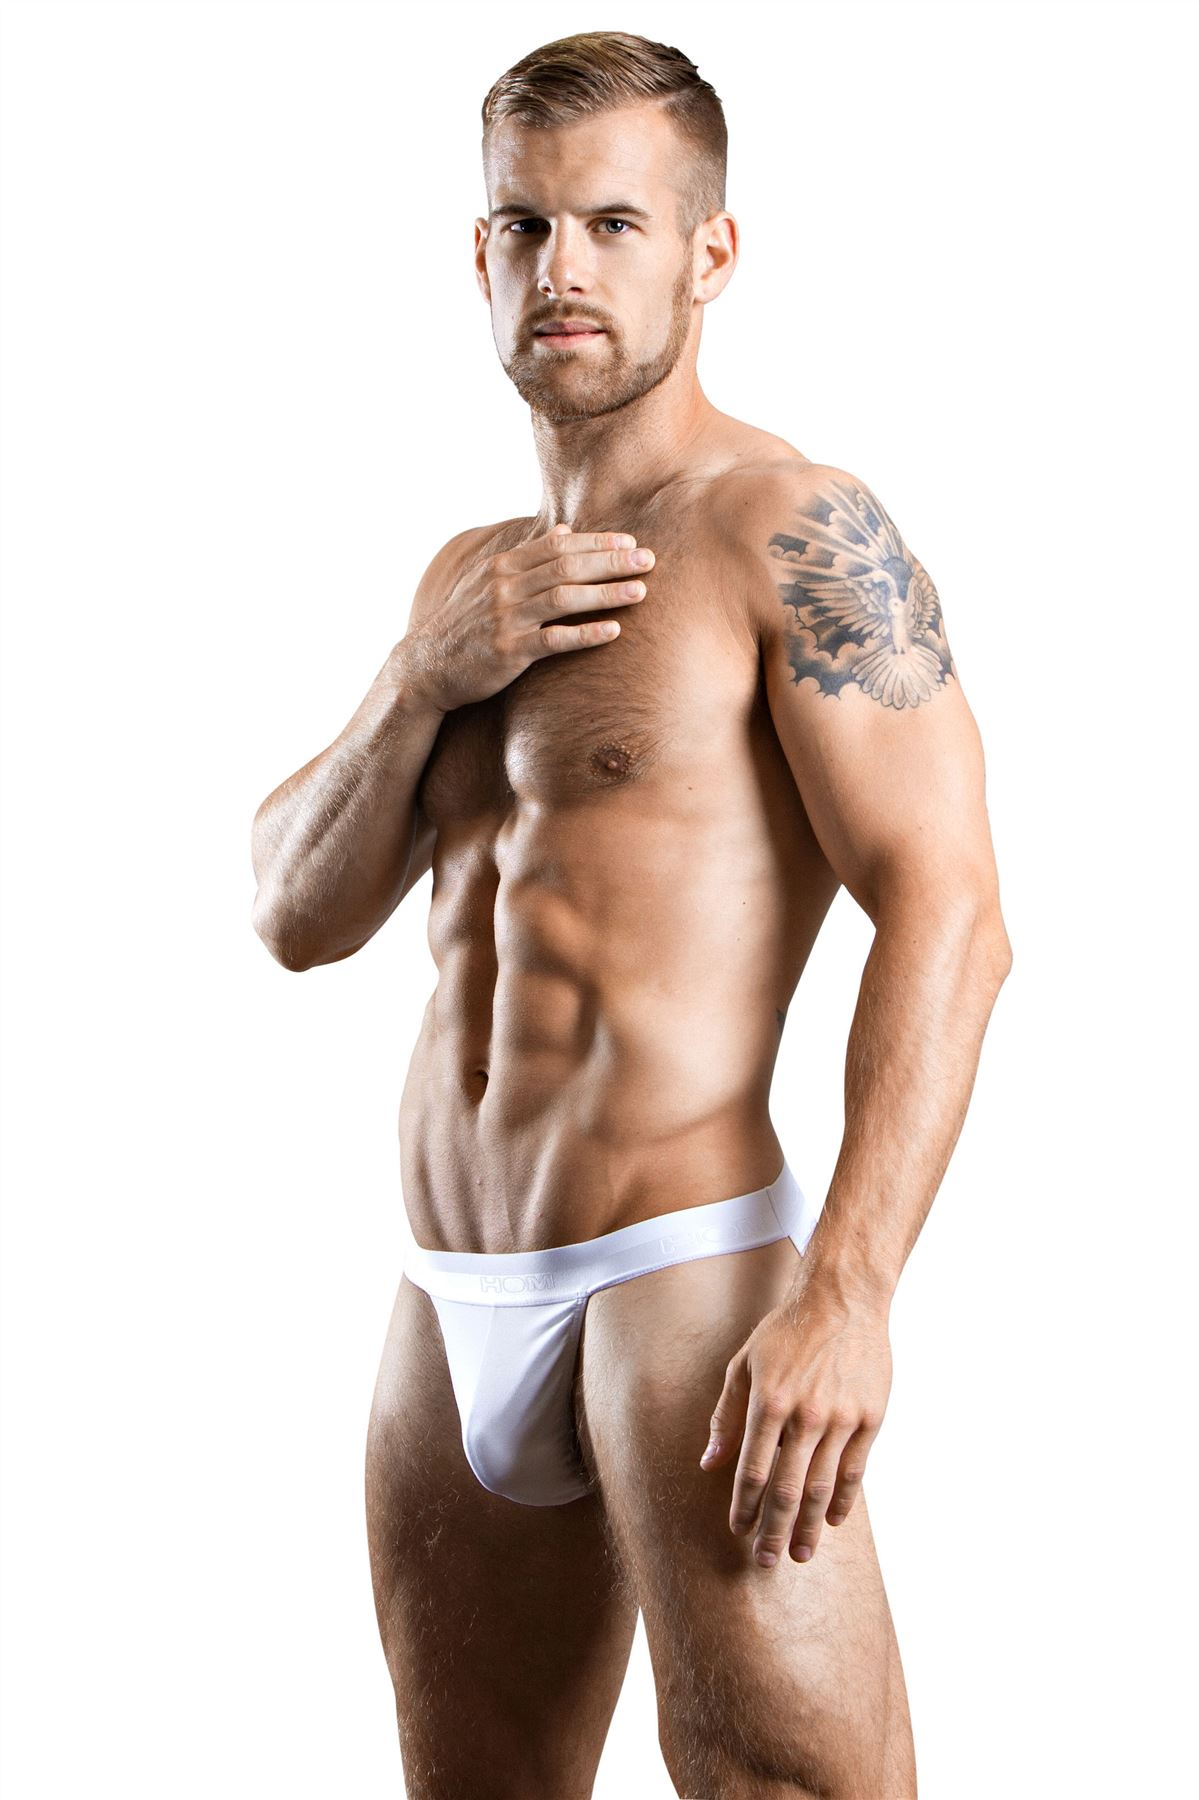 At CheapUndies, we sell affordable mens underwear from many different known and trusted brands. With a constantly changing selection of sizes, styles, colors, brands and patterns, you can buy your favorite styles at unbeatable prices and from the comfort of your home.